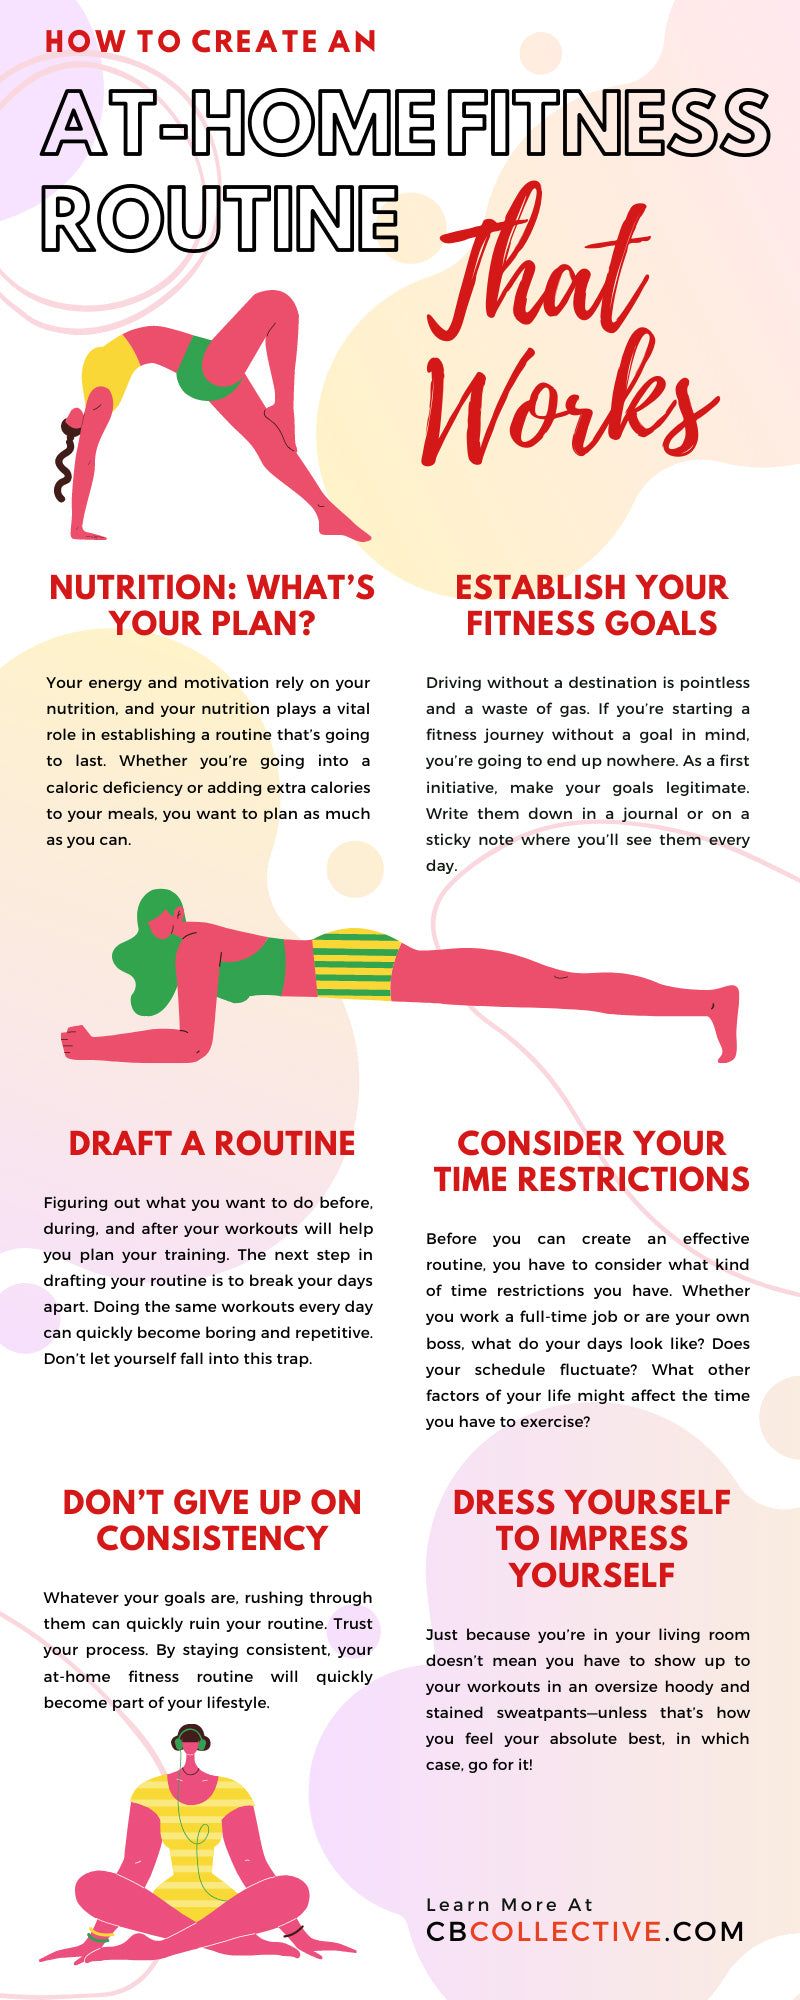 At-Home Fitness Routine That Works